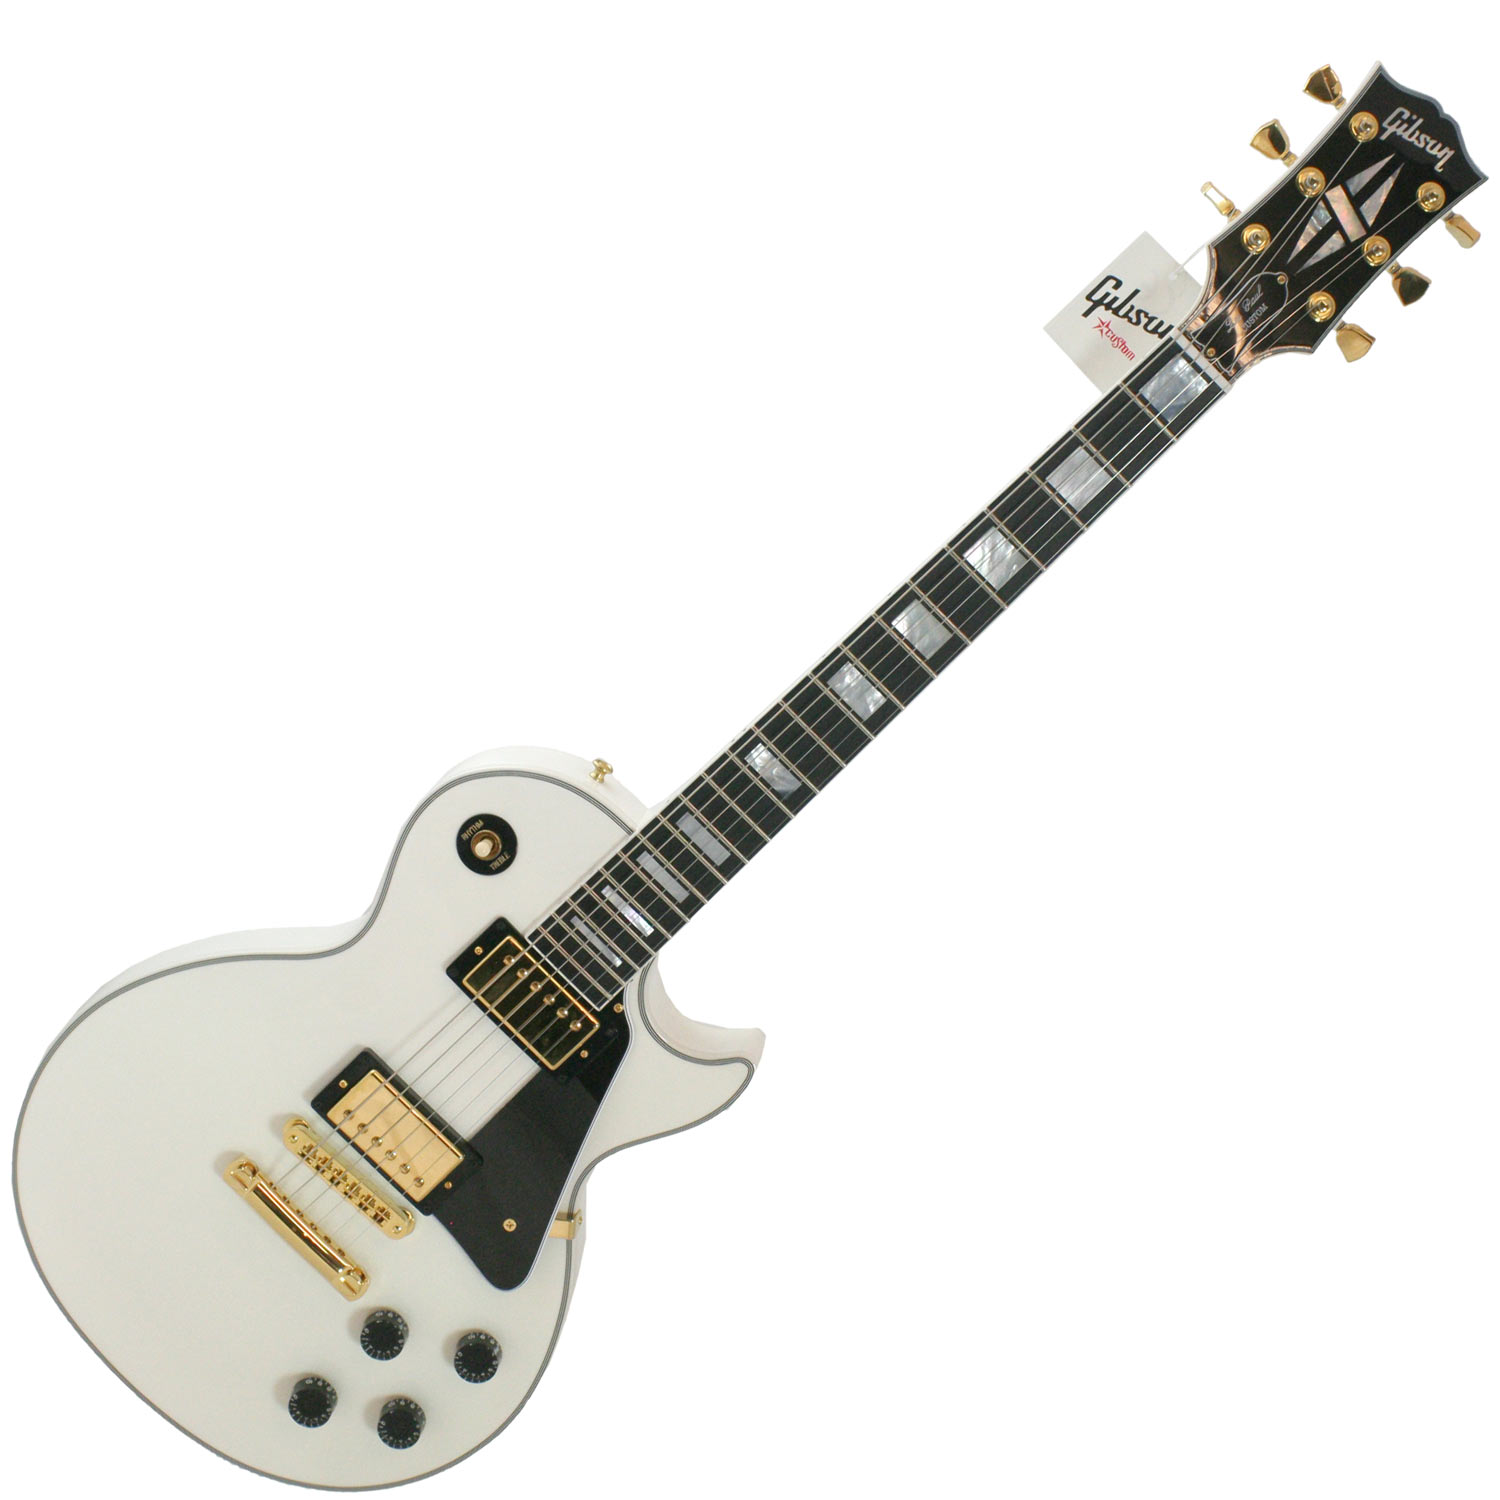 gibson-les-paul-custom-alpine-white.jpg